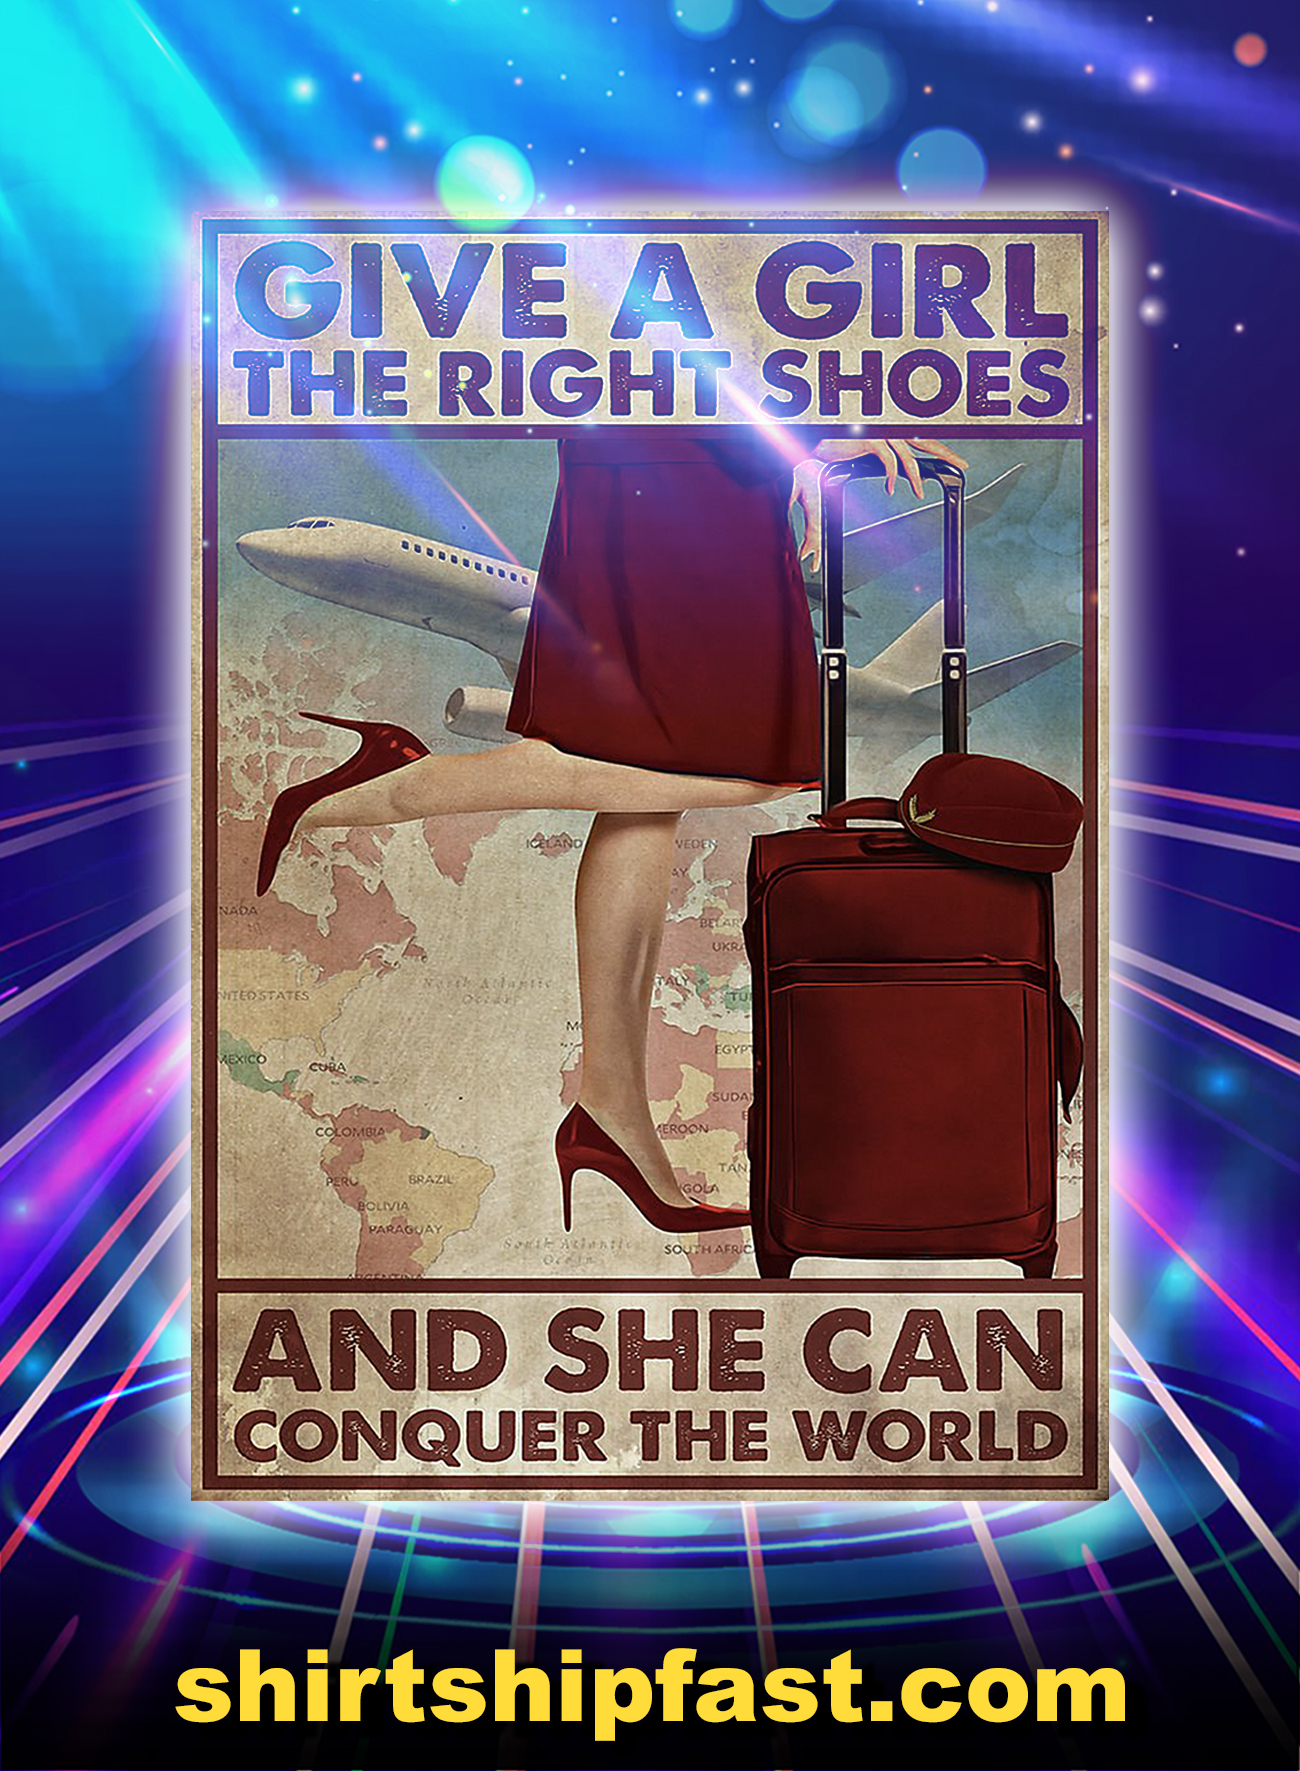 Flight attendant give a girl the right shoes and she can conquer the world poster - A4